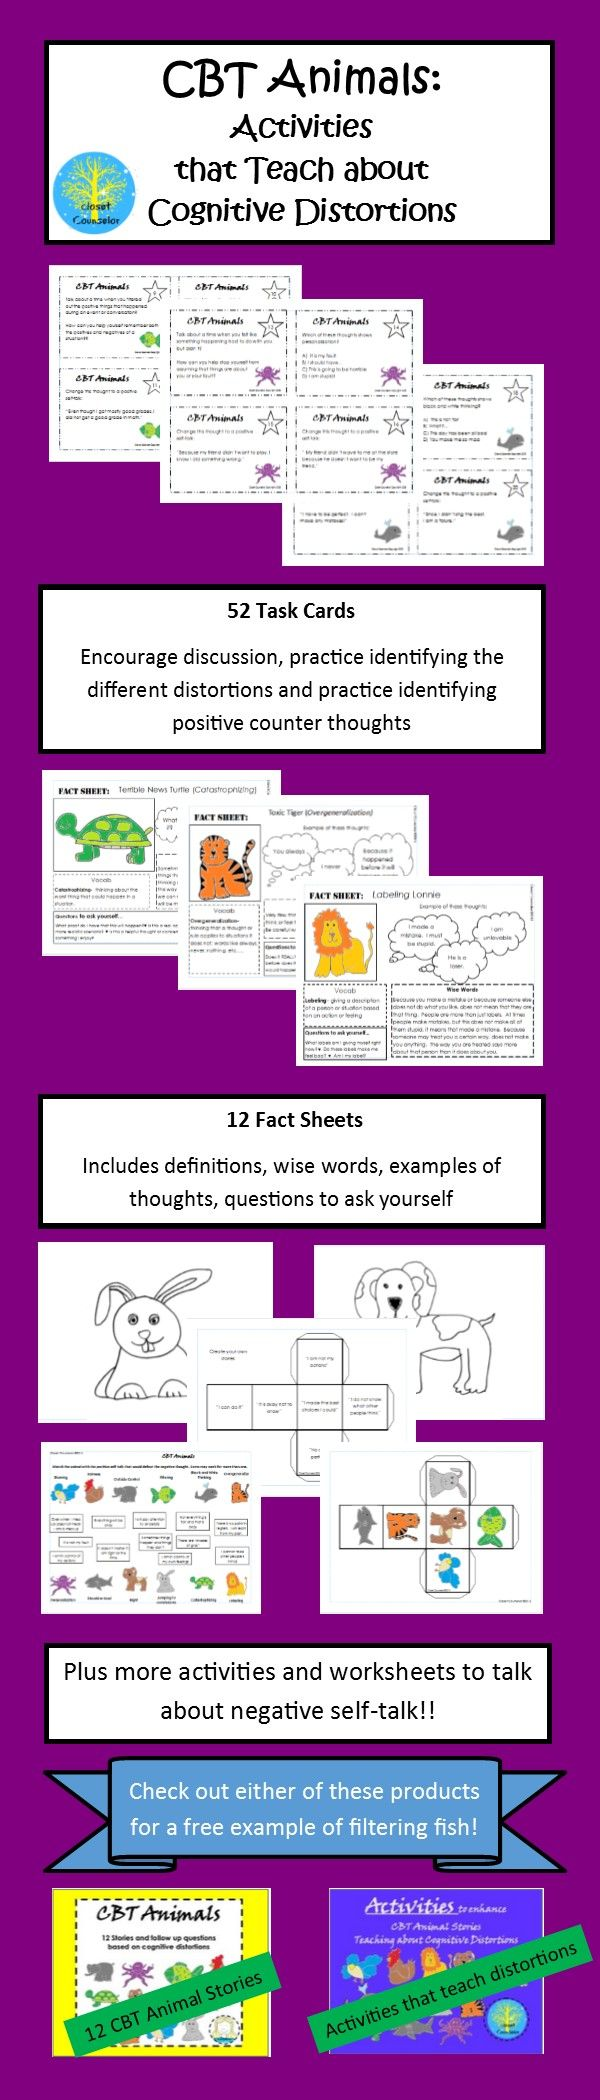 Worksheets Cognitive Distortions Worksheet cbt animals activities that teach about cognitive distortions as a follow up to the successful stories distortions